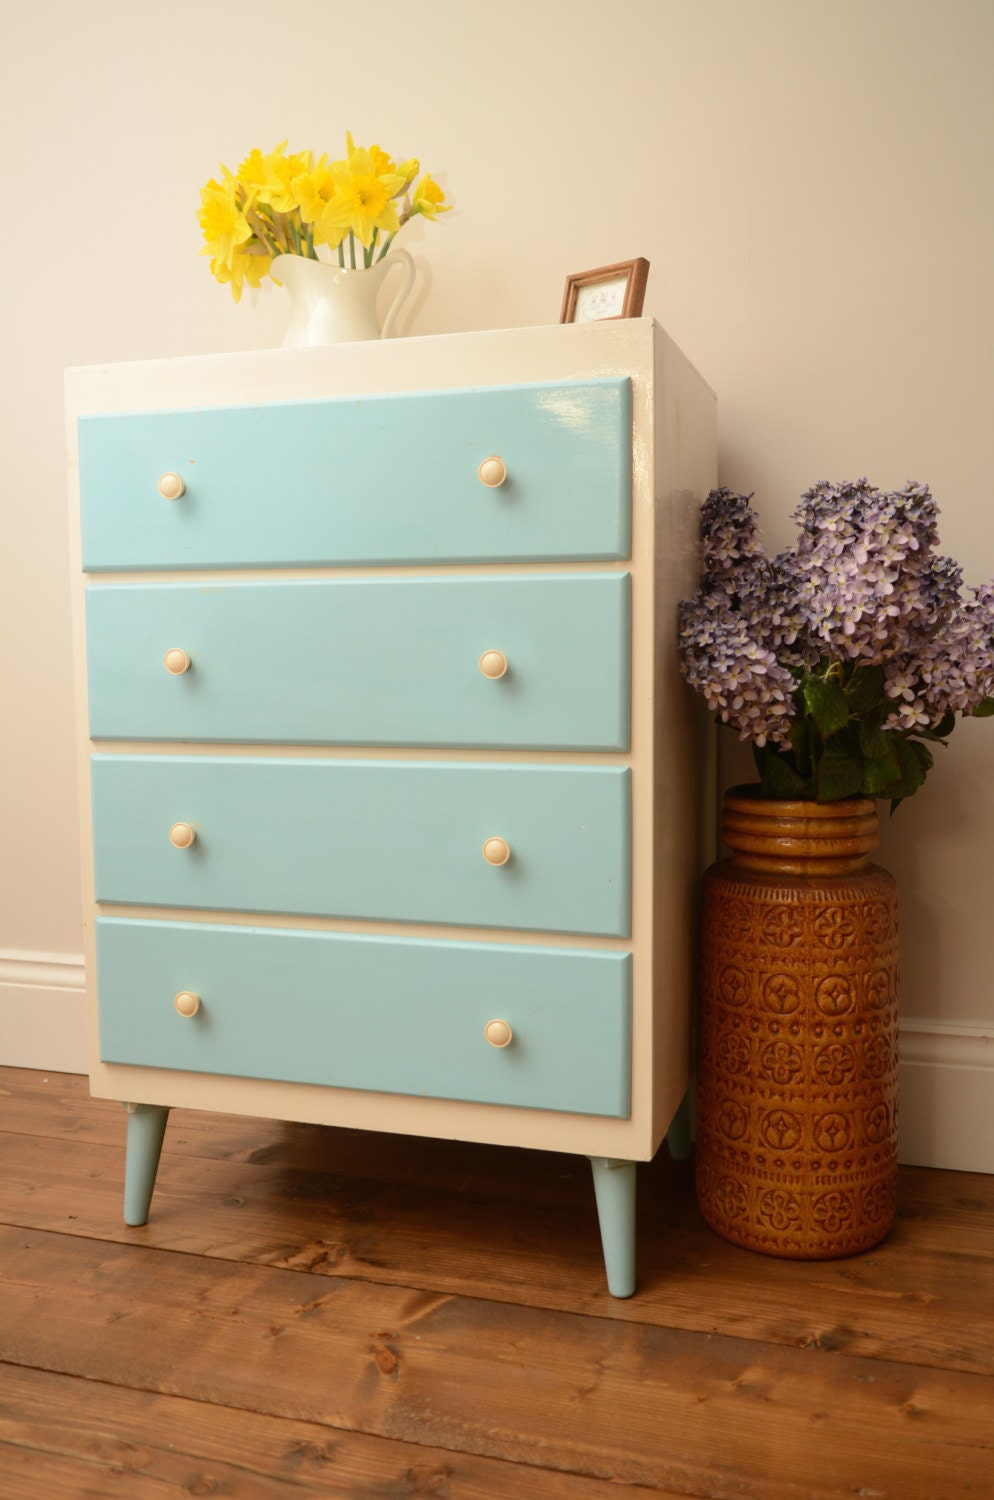 Stunning retro shabby chic painted chest of drawers for Small bedside chest of drawers